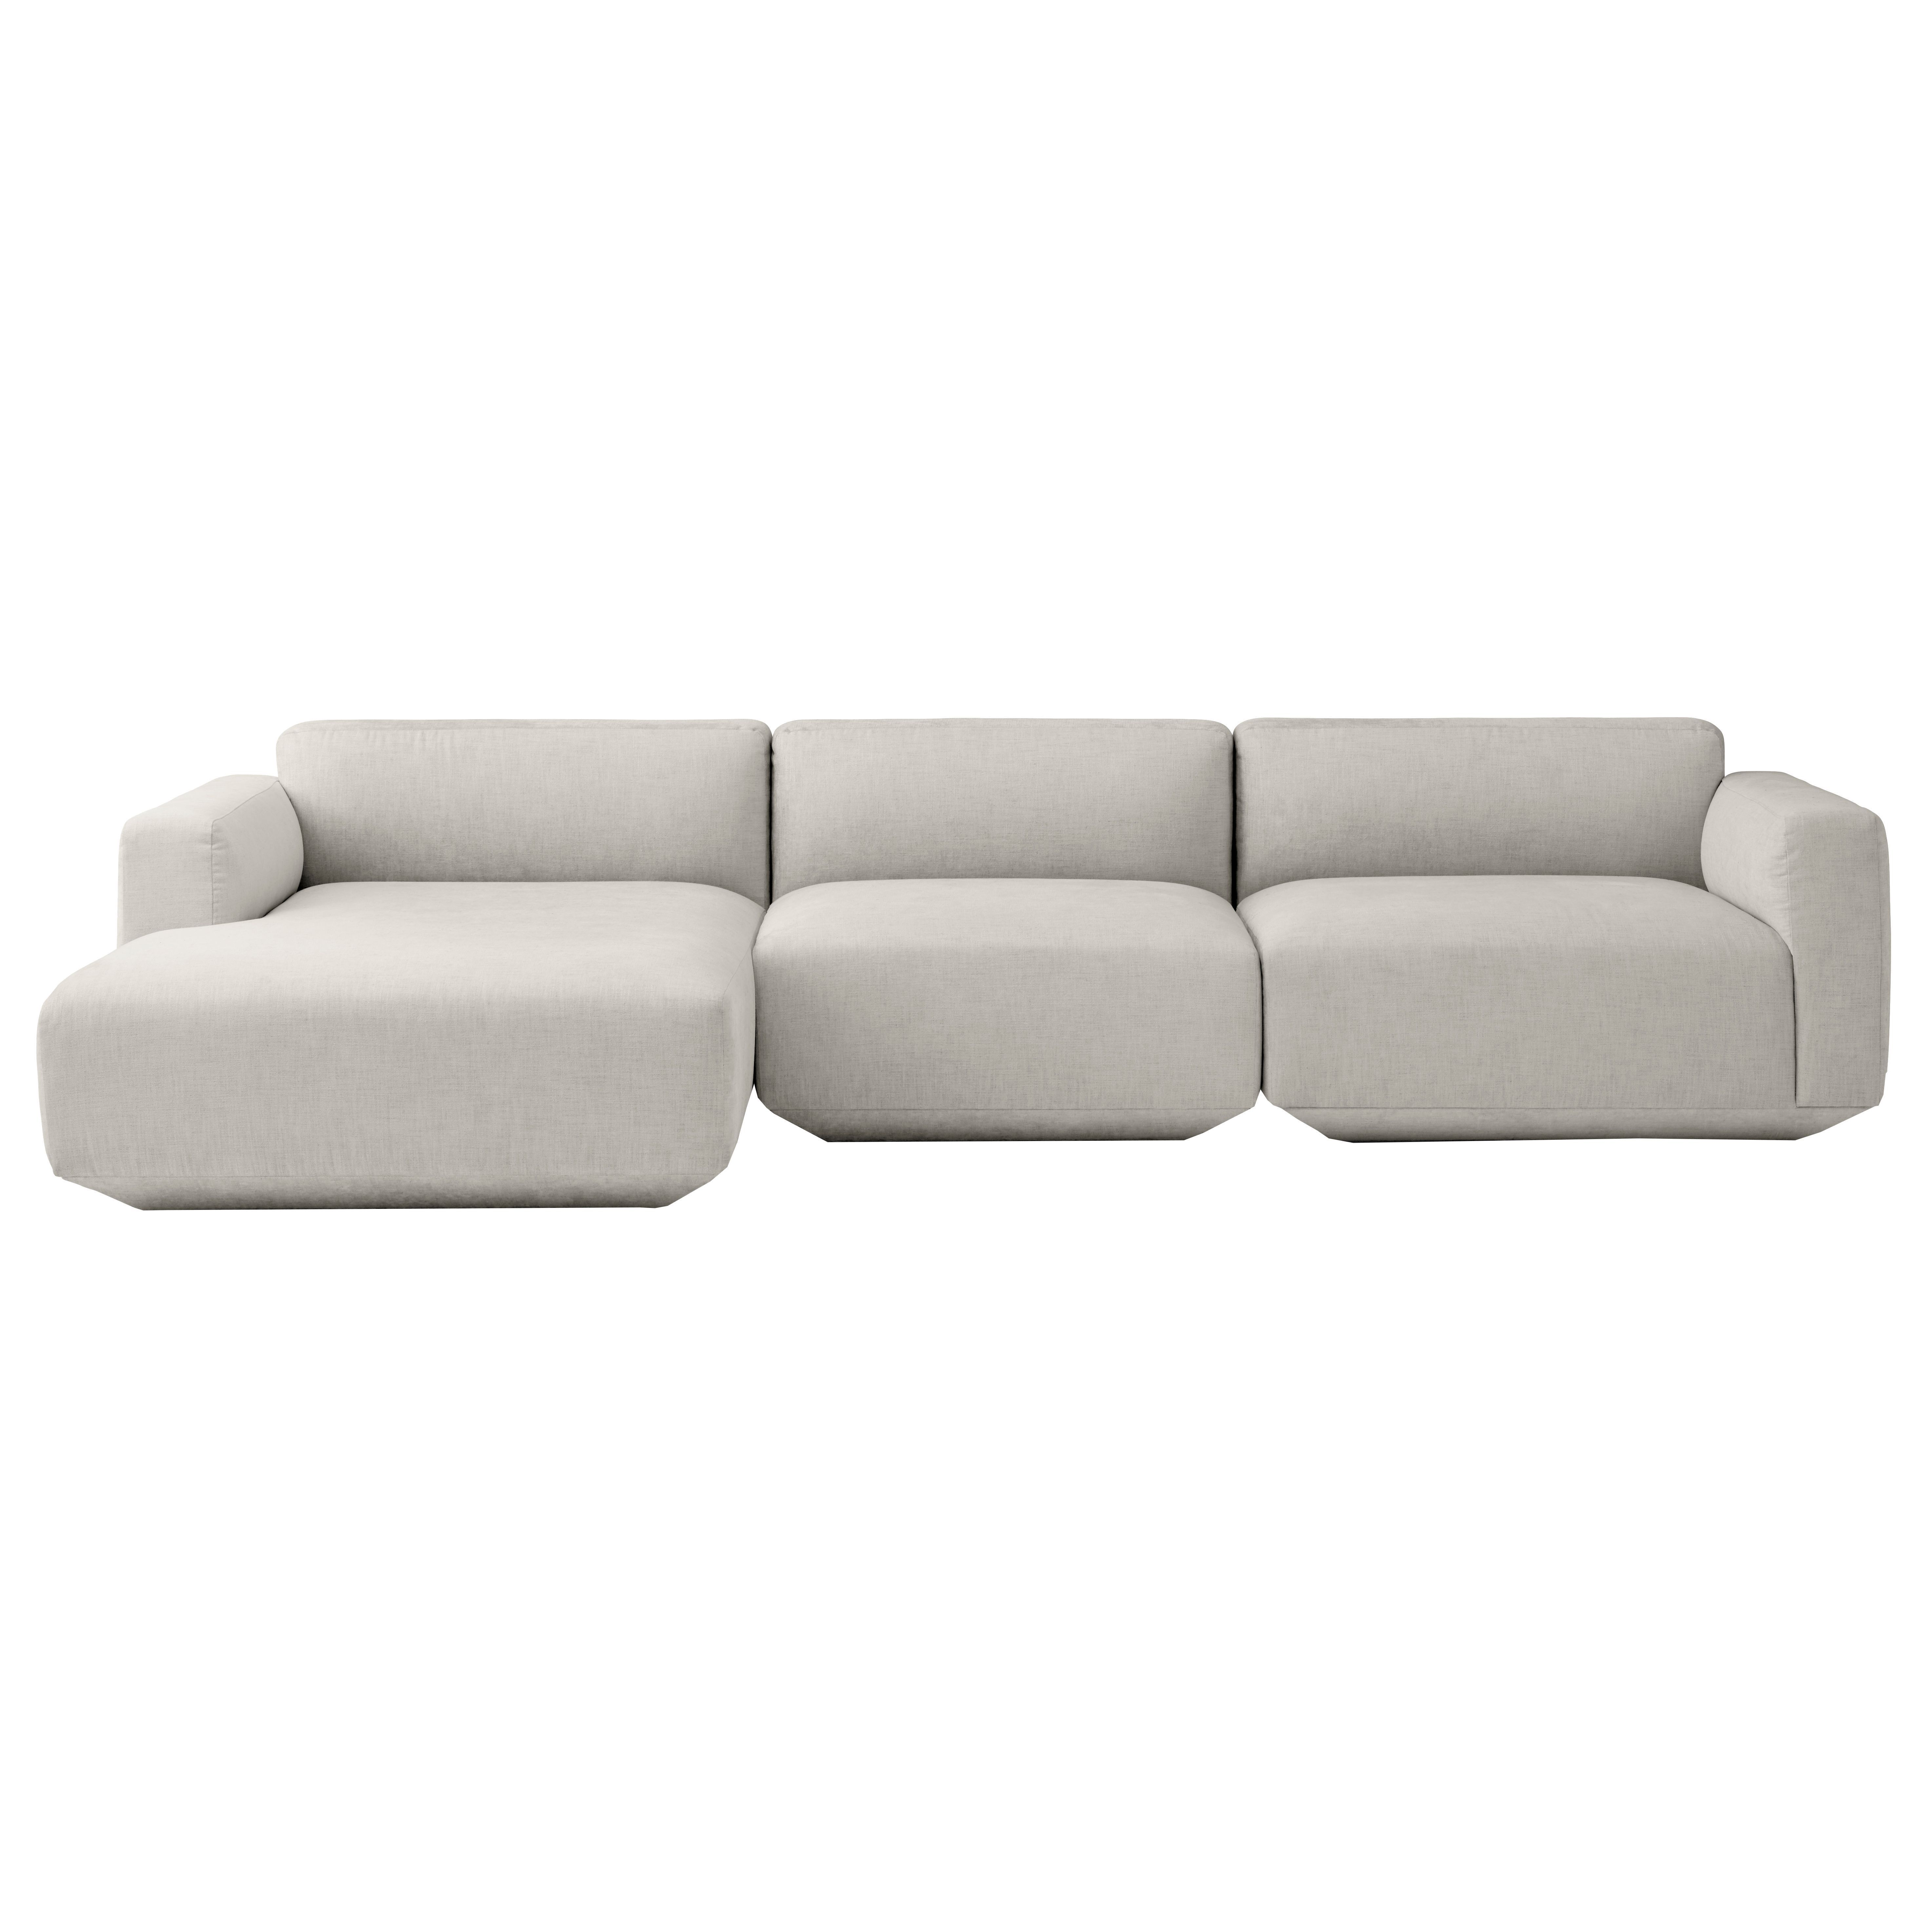 Bank Met Chaise Longue Links Andtradition Develius Bank 3 Zits Met Chaise Longue Links